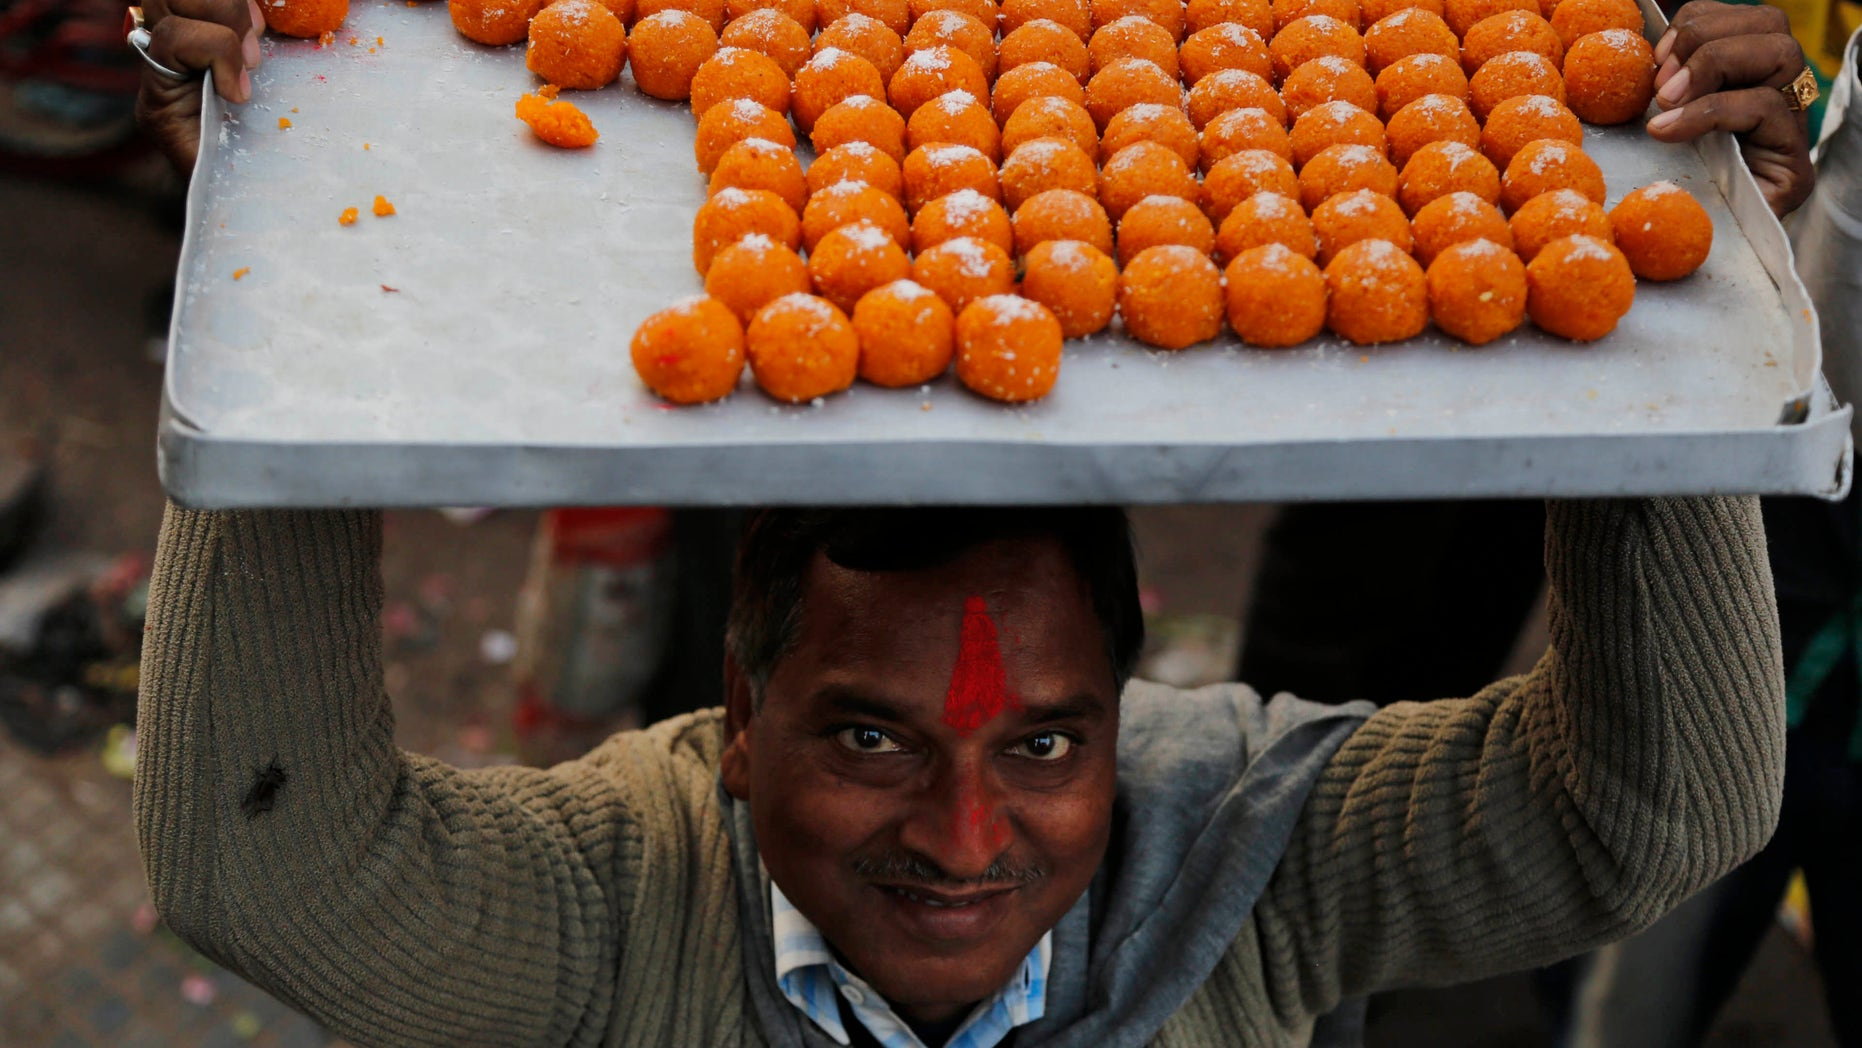 A man carries sweets to distribute as India's main opposition Bharatiya Janata Party (BJP) supporters celebrate the party's victory in various state Assembly elections in Allahabad,India , Sunday, Dec. 8, 2013. BJP, the main Hindu nationalist party, appeared to make strong political gains in four heartland states Sunday, as preliminary results showed the ruling Congress party sidelined in a race seen as a test before next year's general election. (AP Photo/Rajesh Kumar Singh)